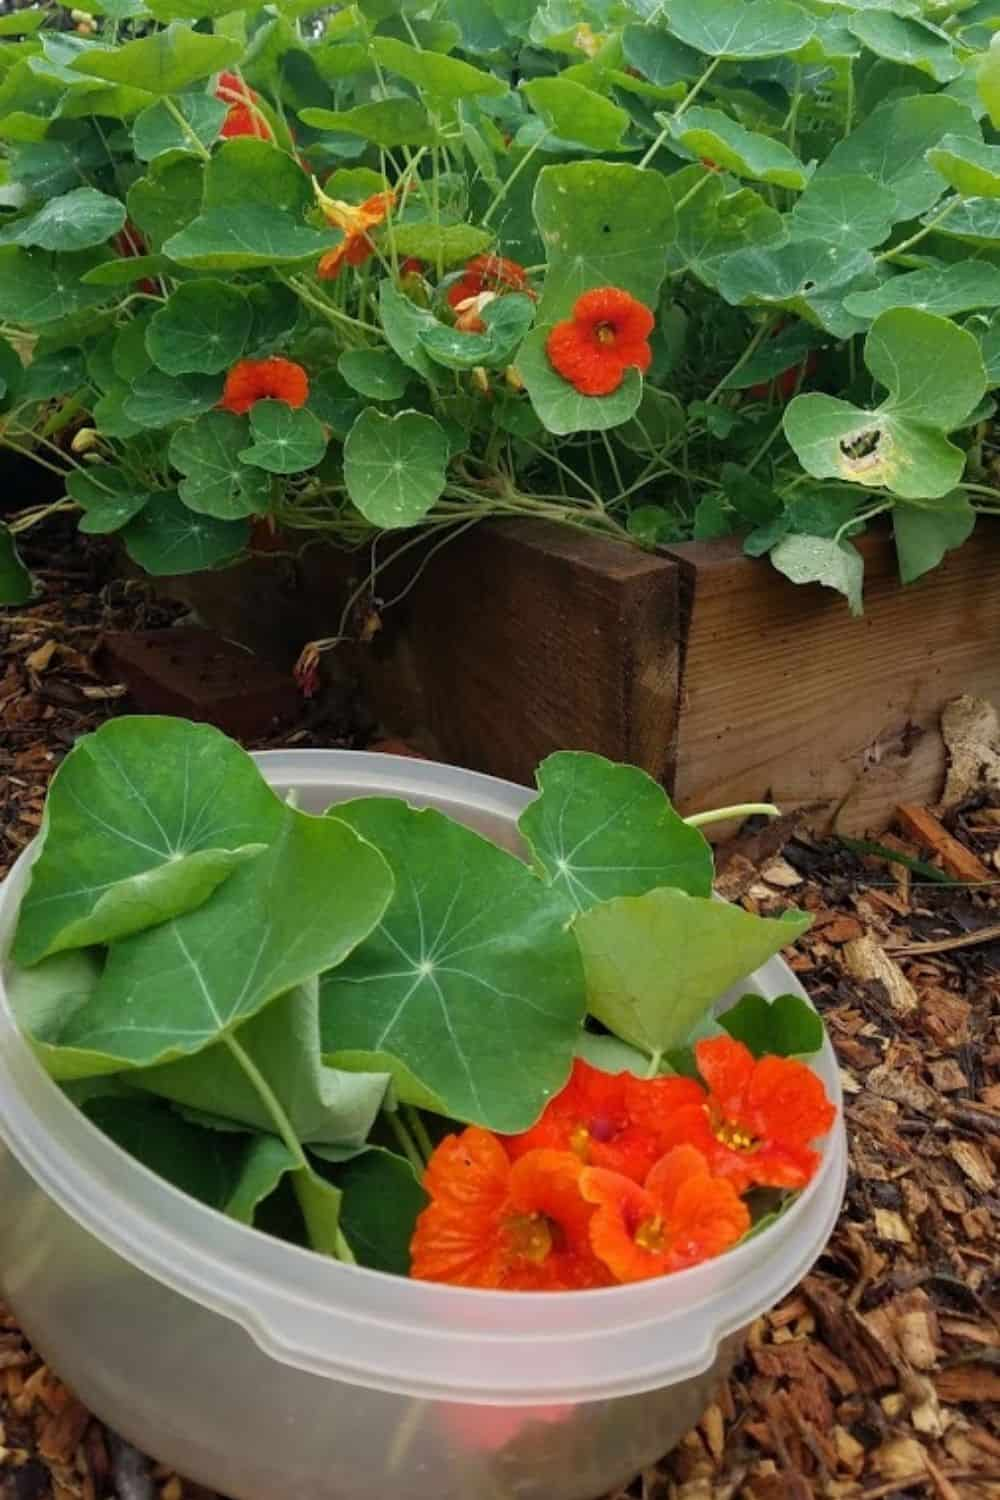 container of nasturtium leaves and flowers I jsut picked